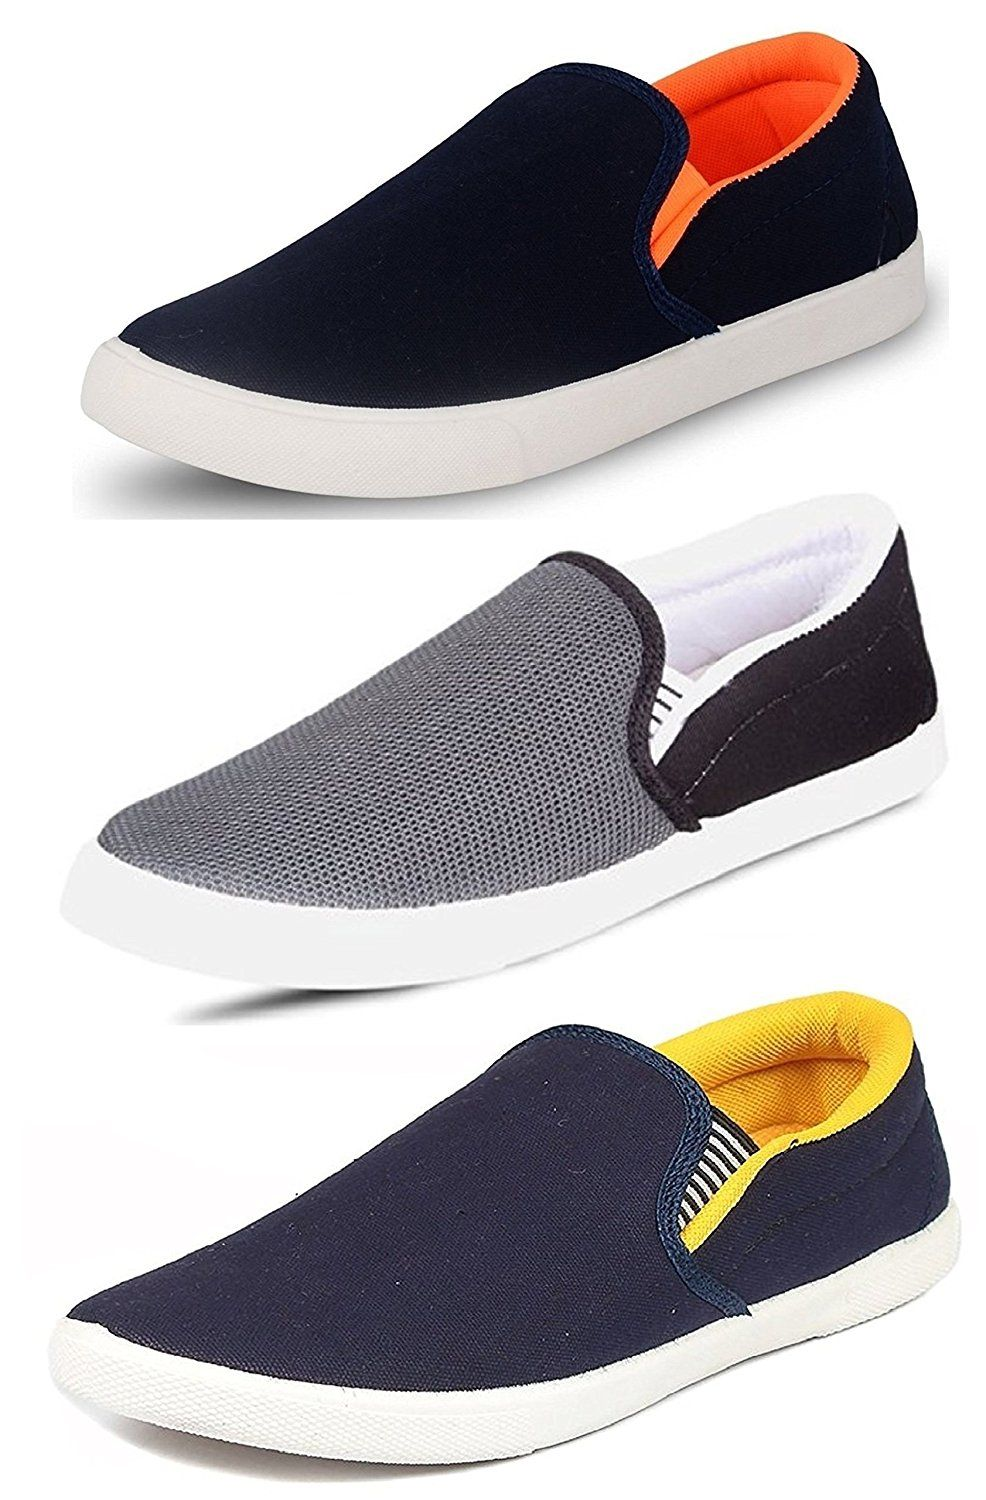 a04eb4e56 Tempo Men s Combo Pack Of 3 Synthetic Loafers Shoes - Multicolour 1000 Rs.